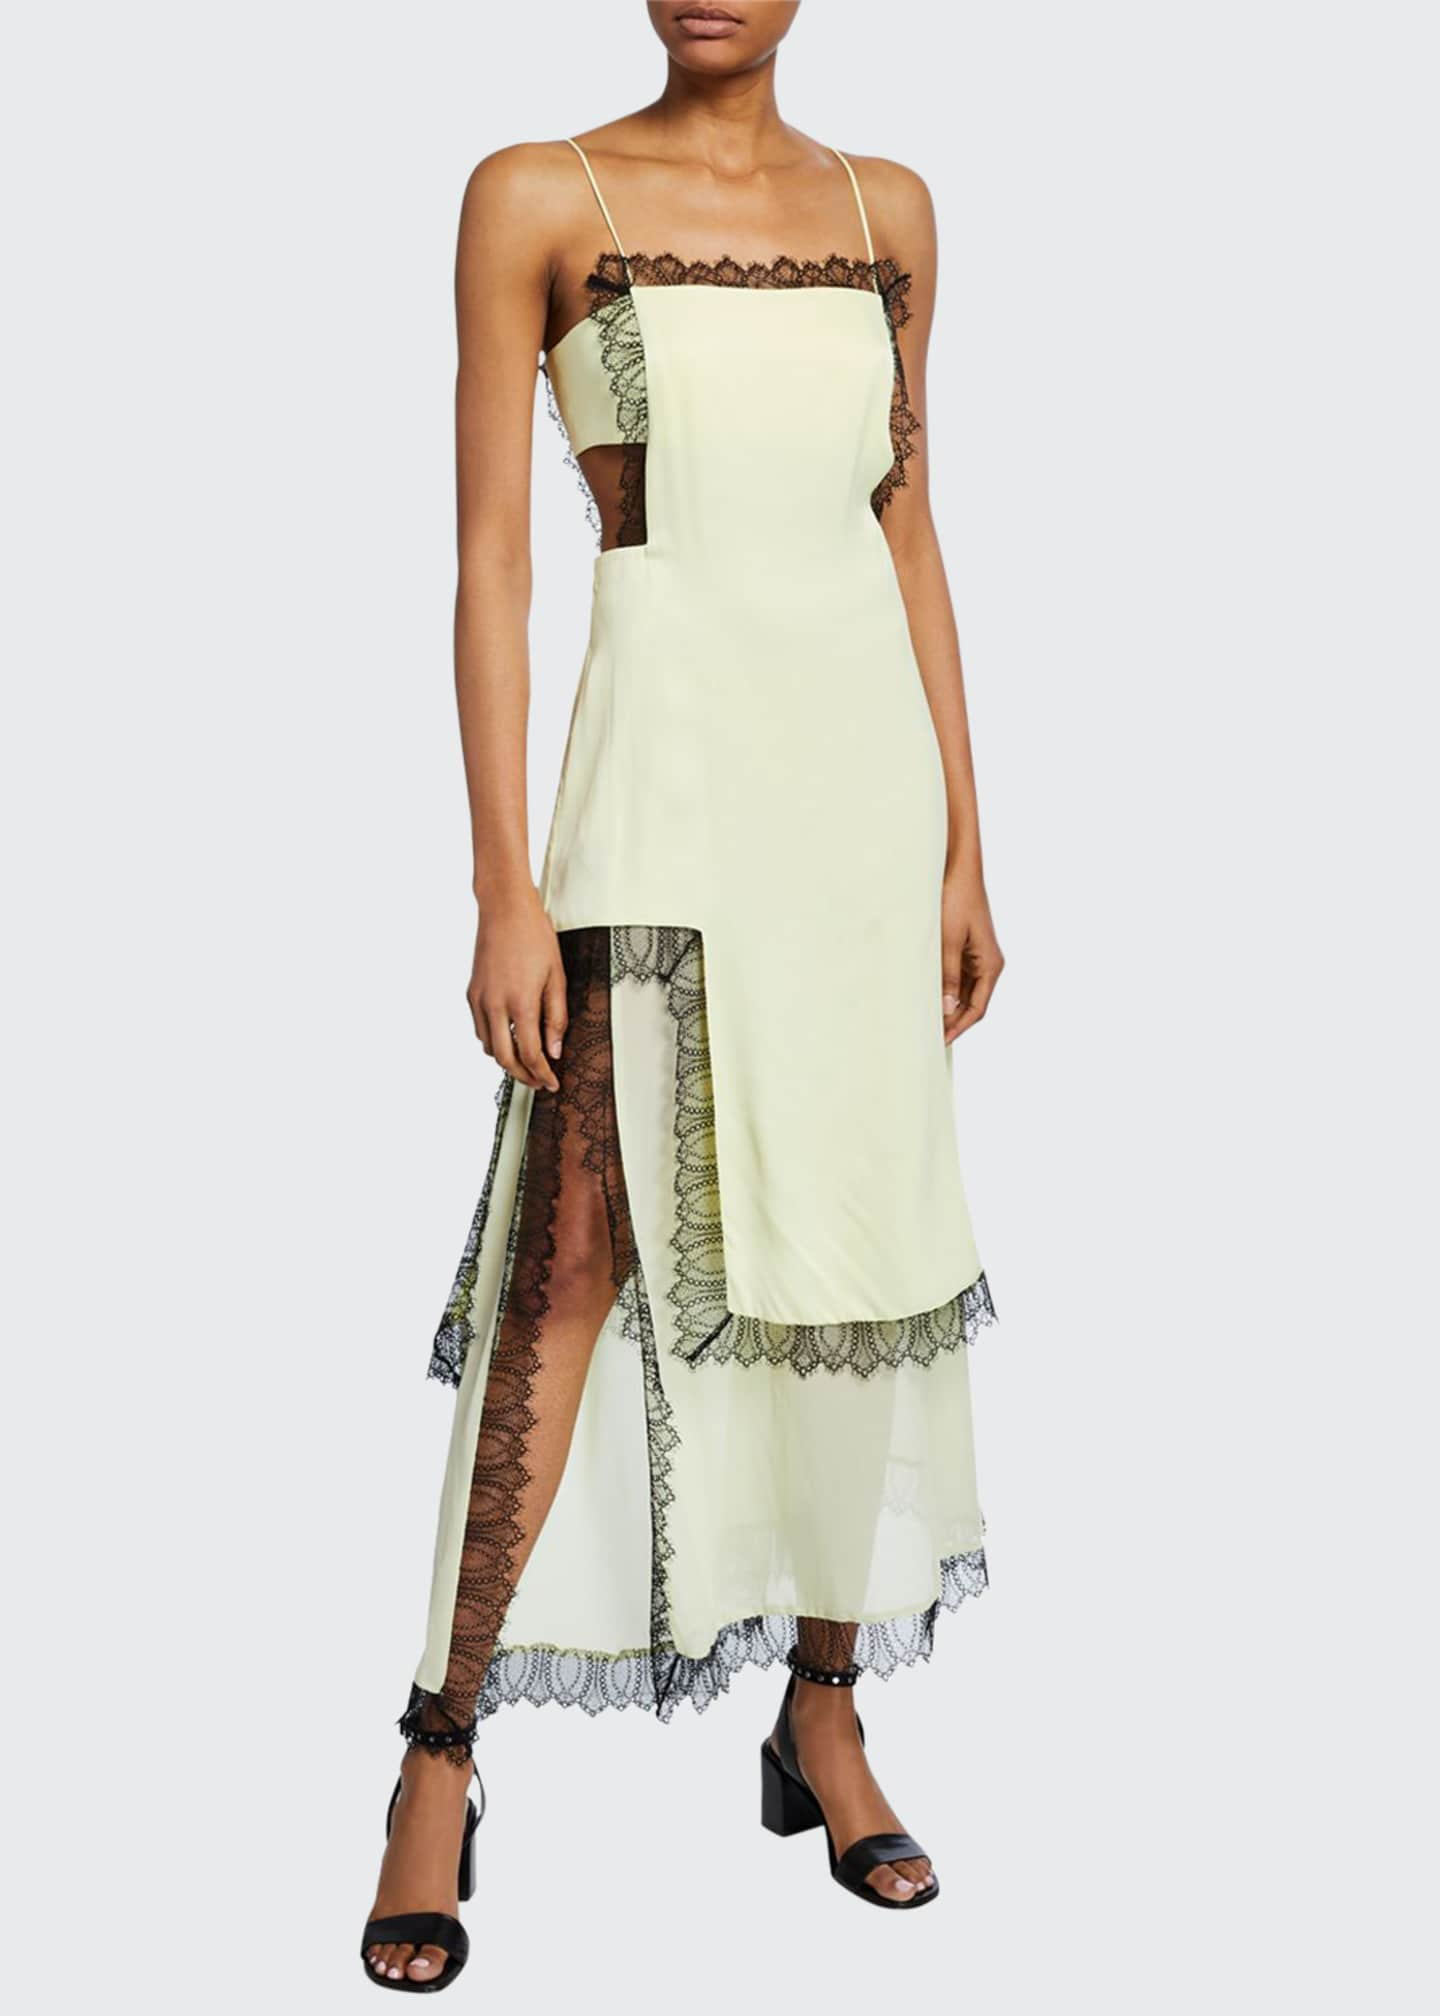 3.1 Phillip Lim Square-Neck Sleeveless Slit Dress with